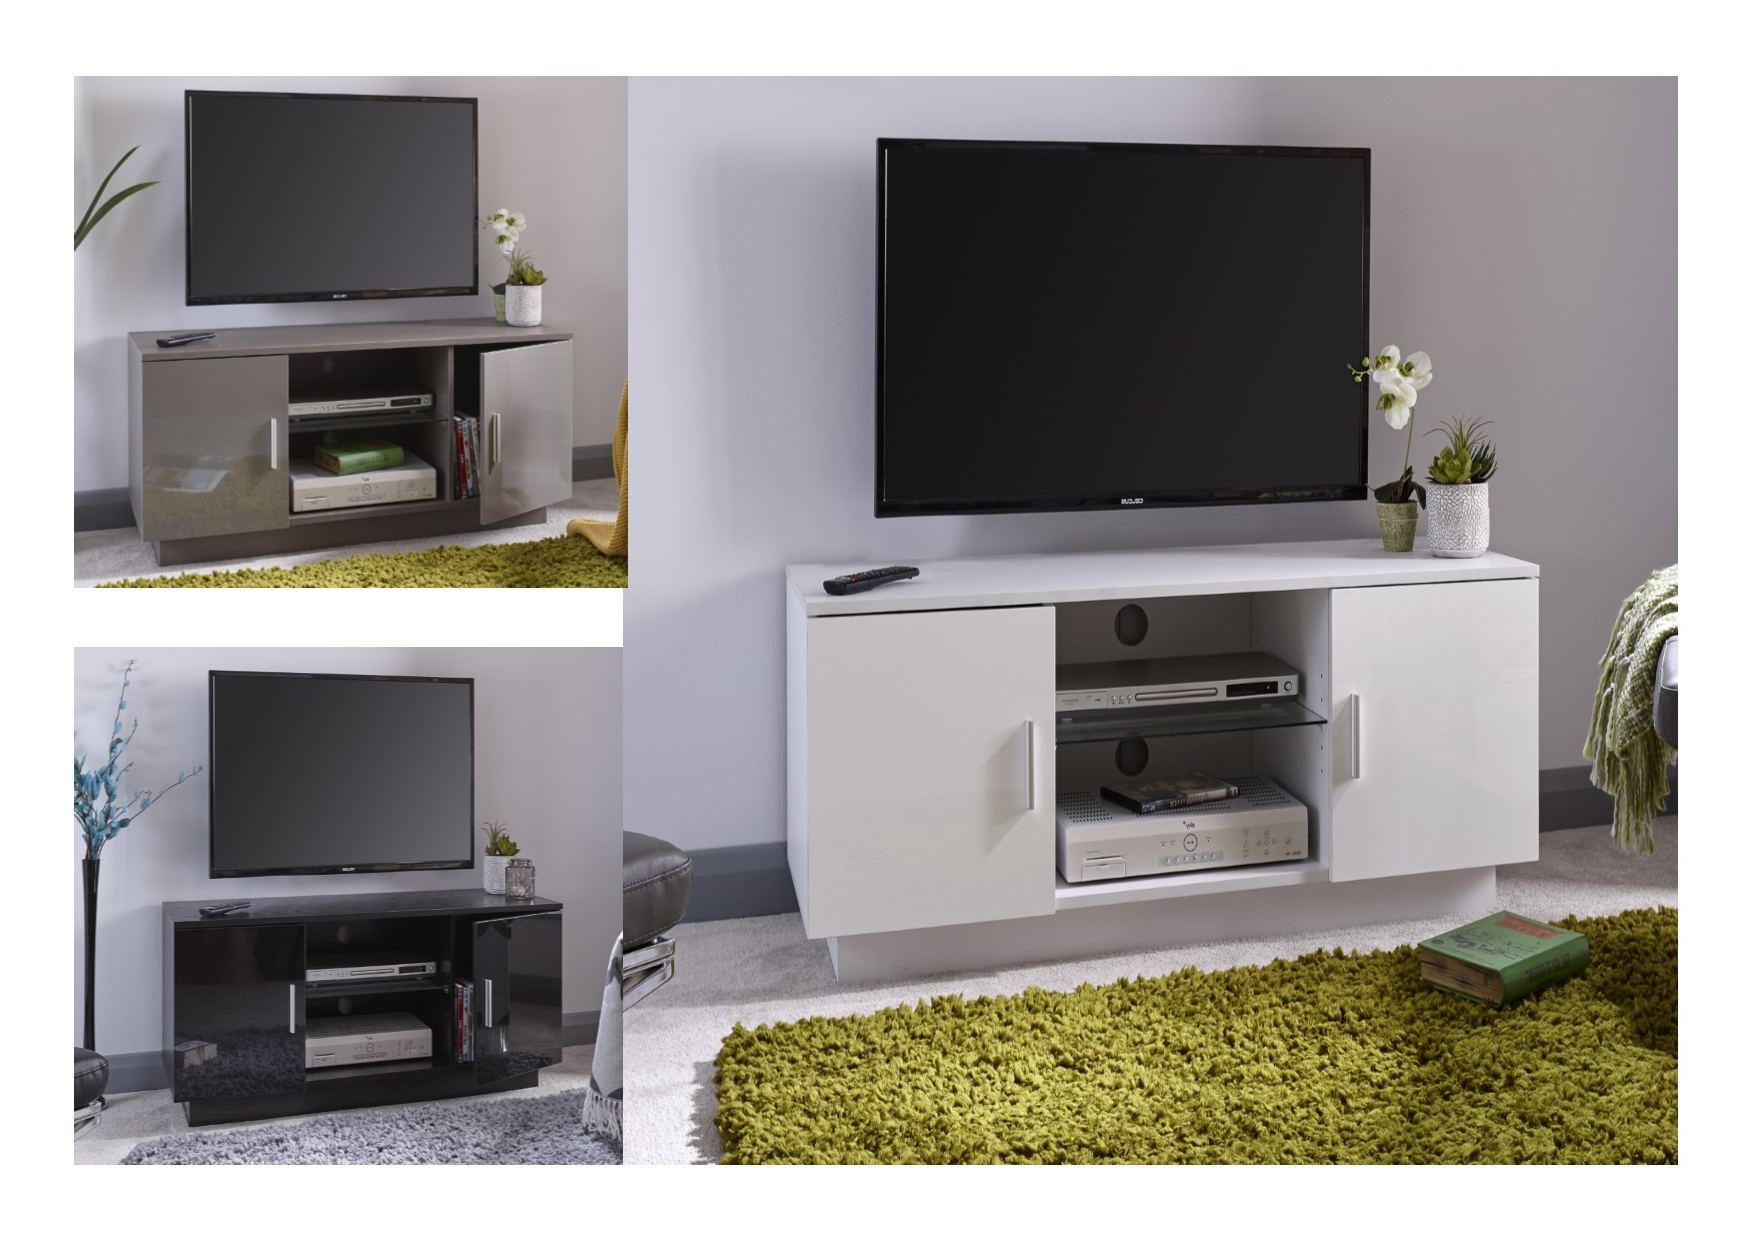 2018 Lima High Gloss Tv Unit – Black, Grey Or White – Tv Cabinet With With Regard To Gloss White Tv Cabinets (View 4 of 20)